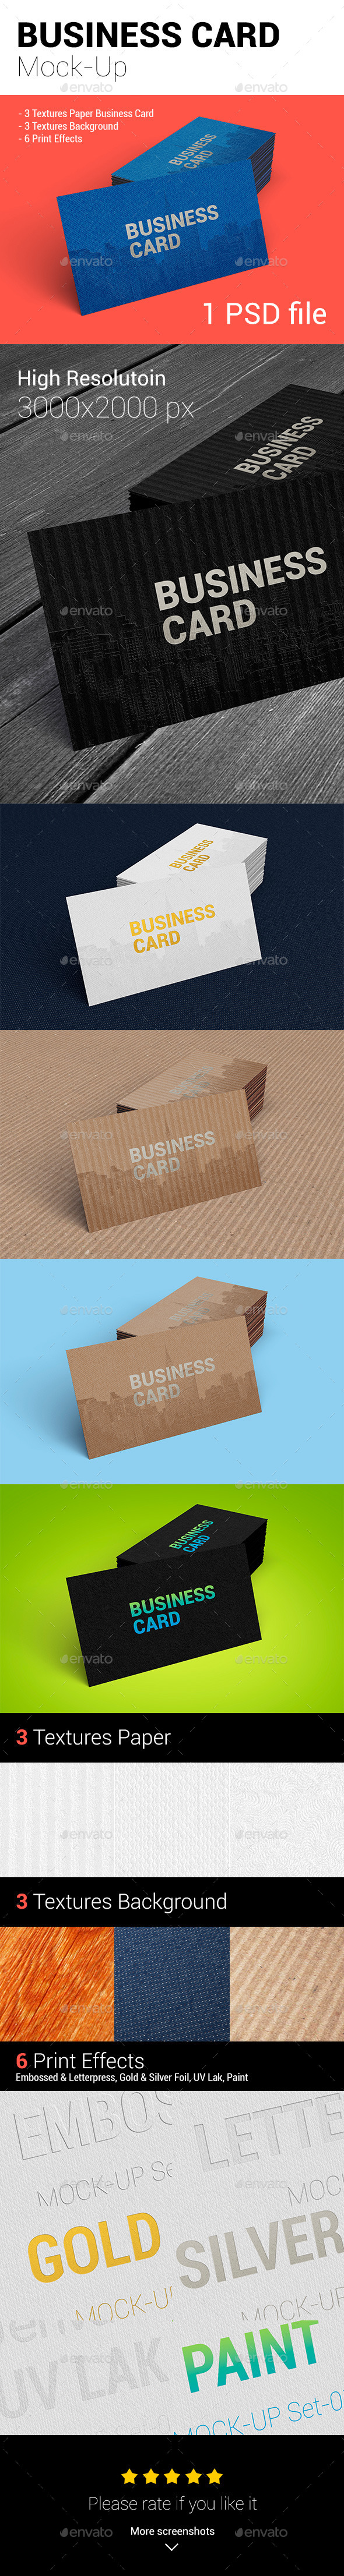 GraphicRiver Business Card Mock-UP 11171128